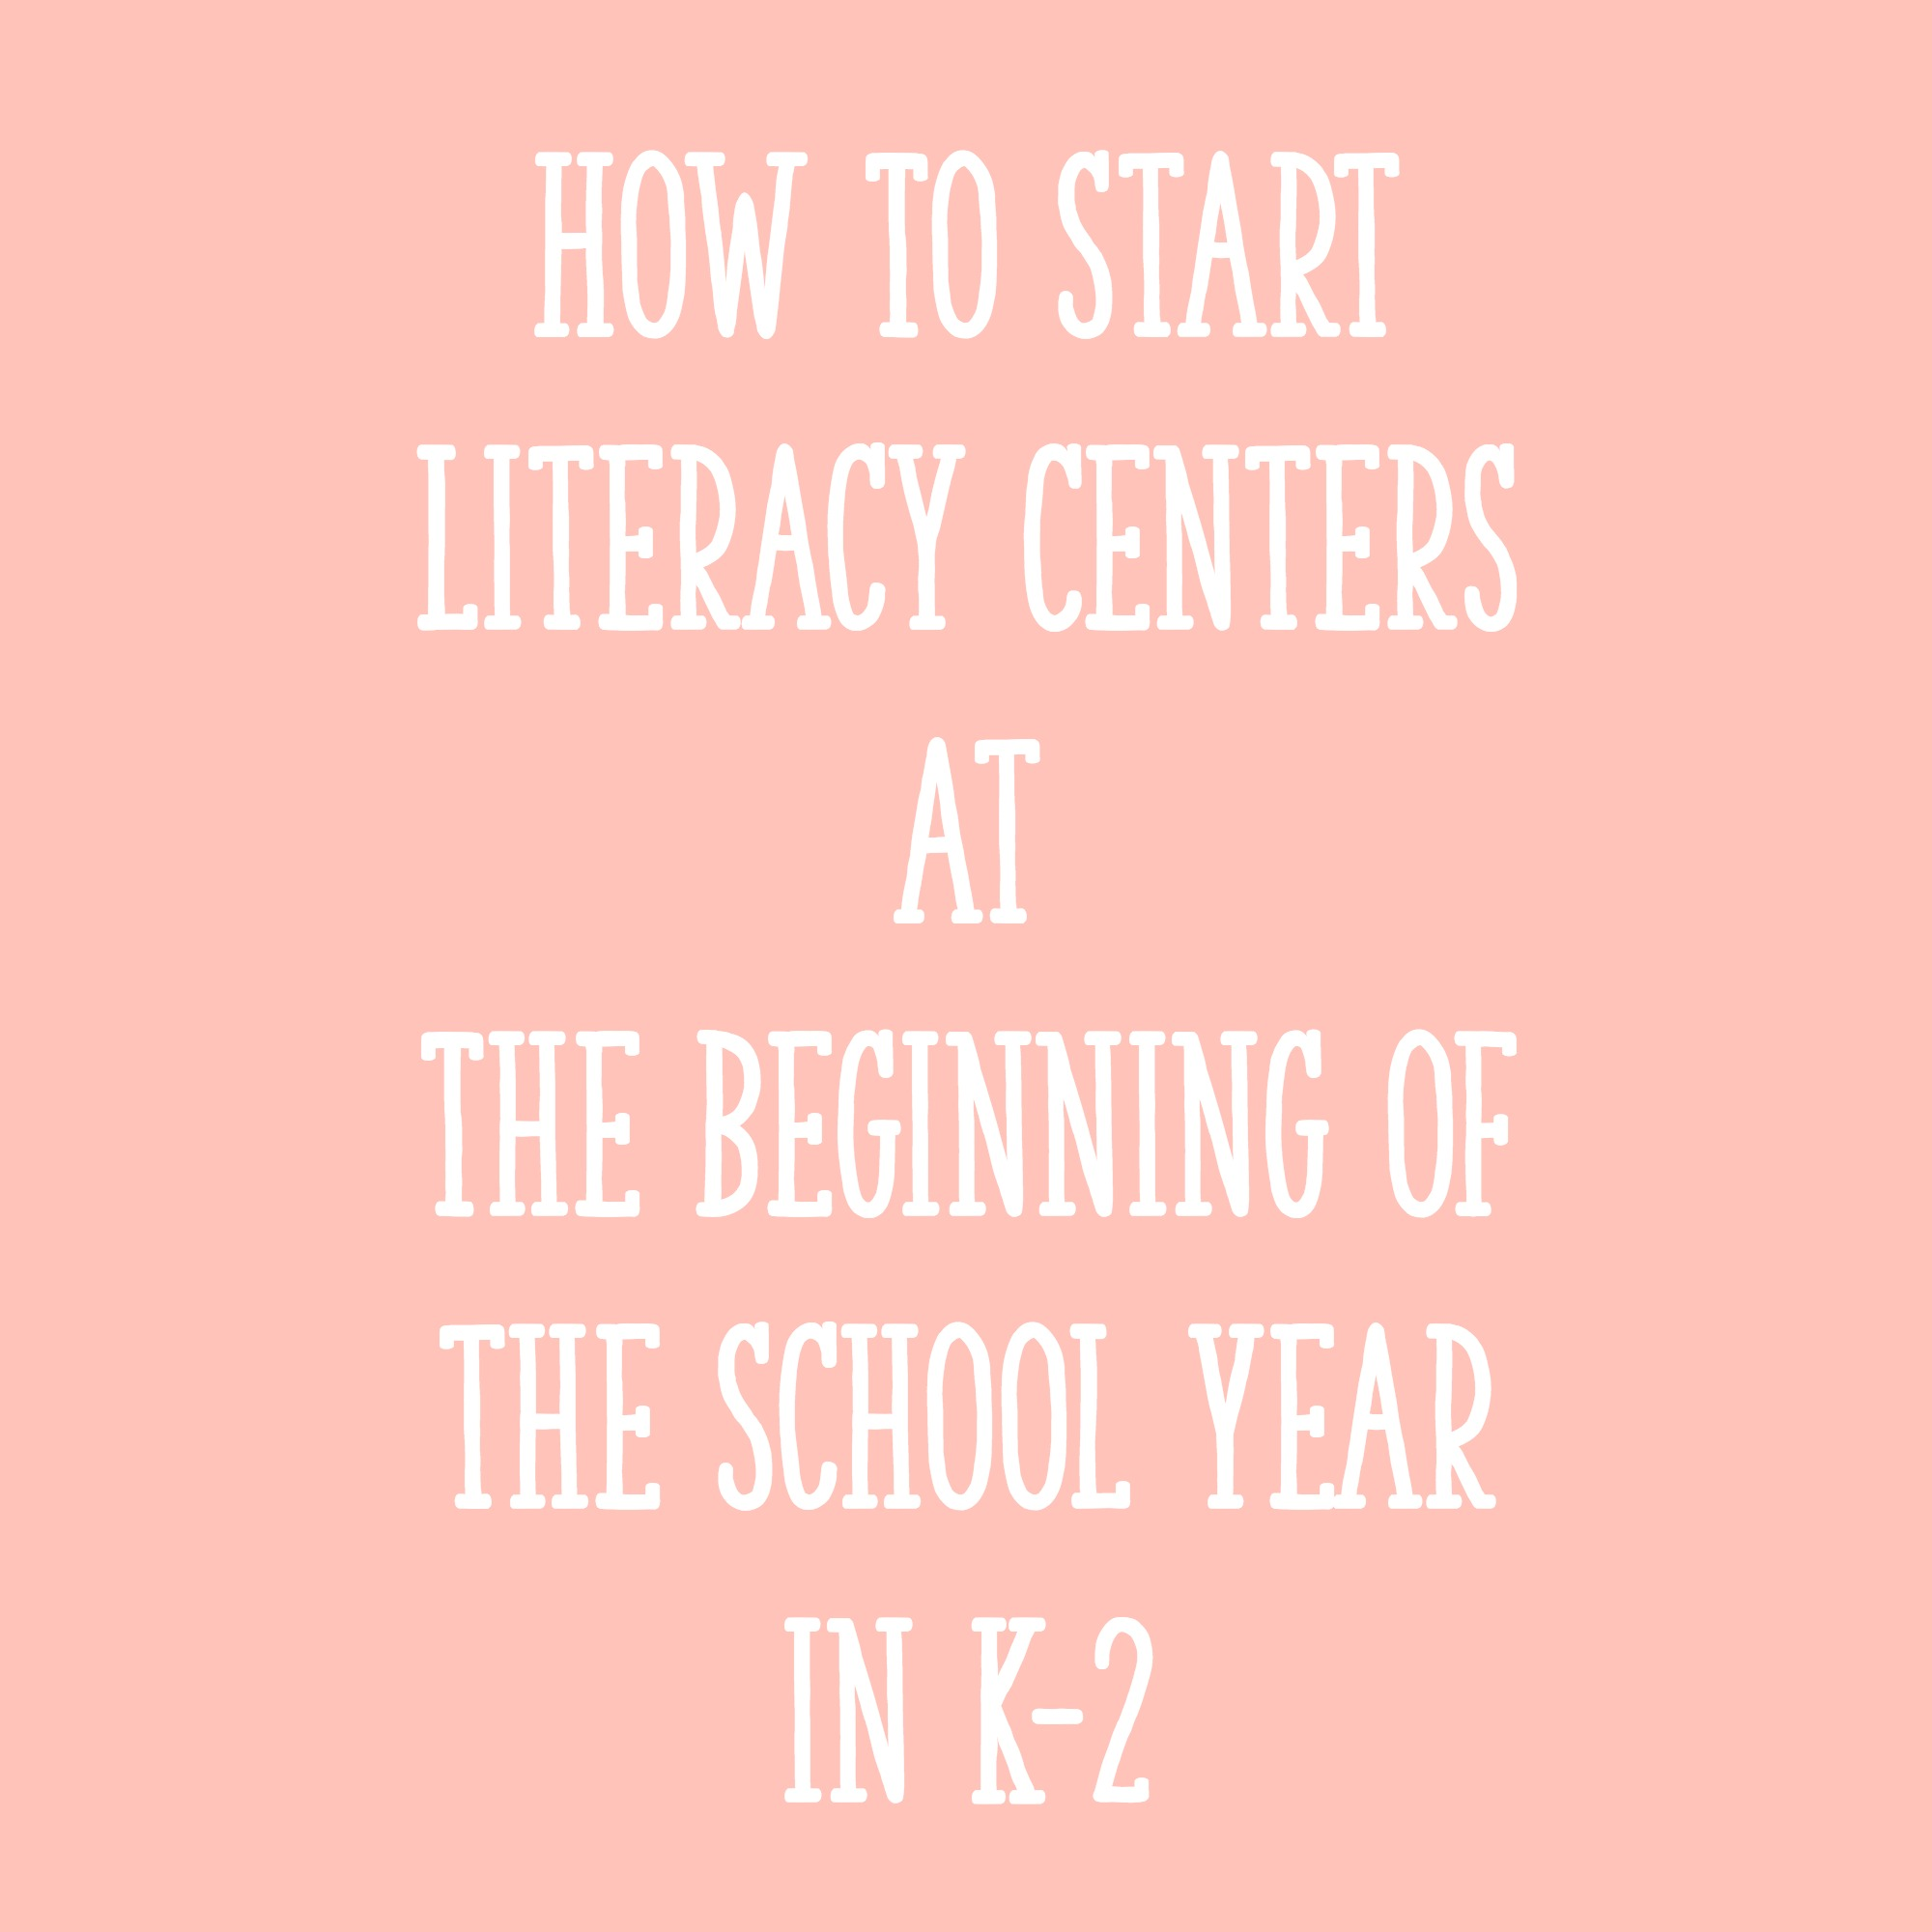 How To Start Literacy Centers At The Beginning Of The